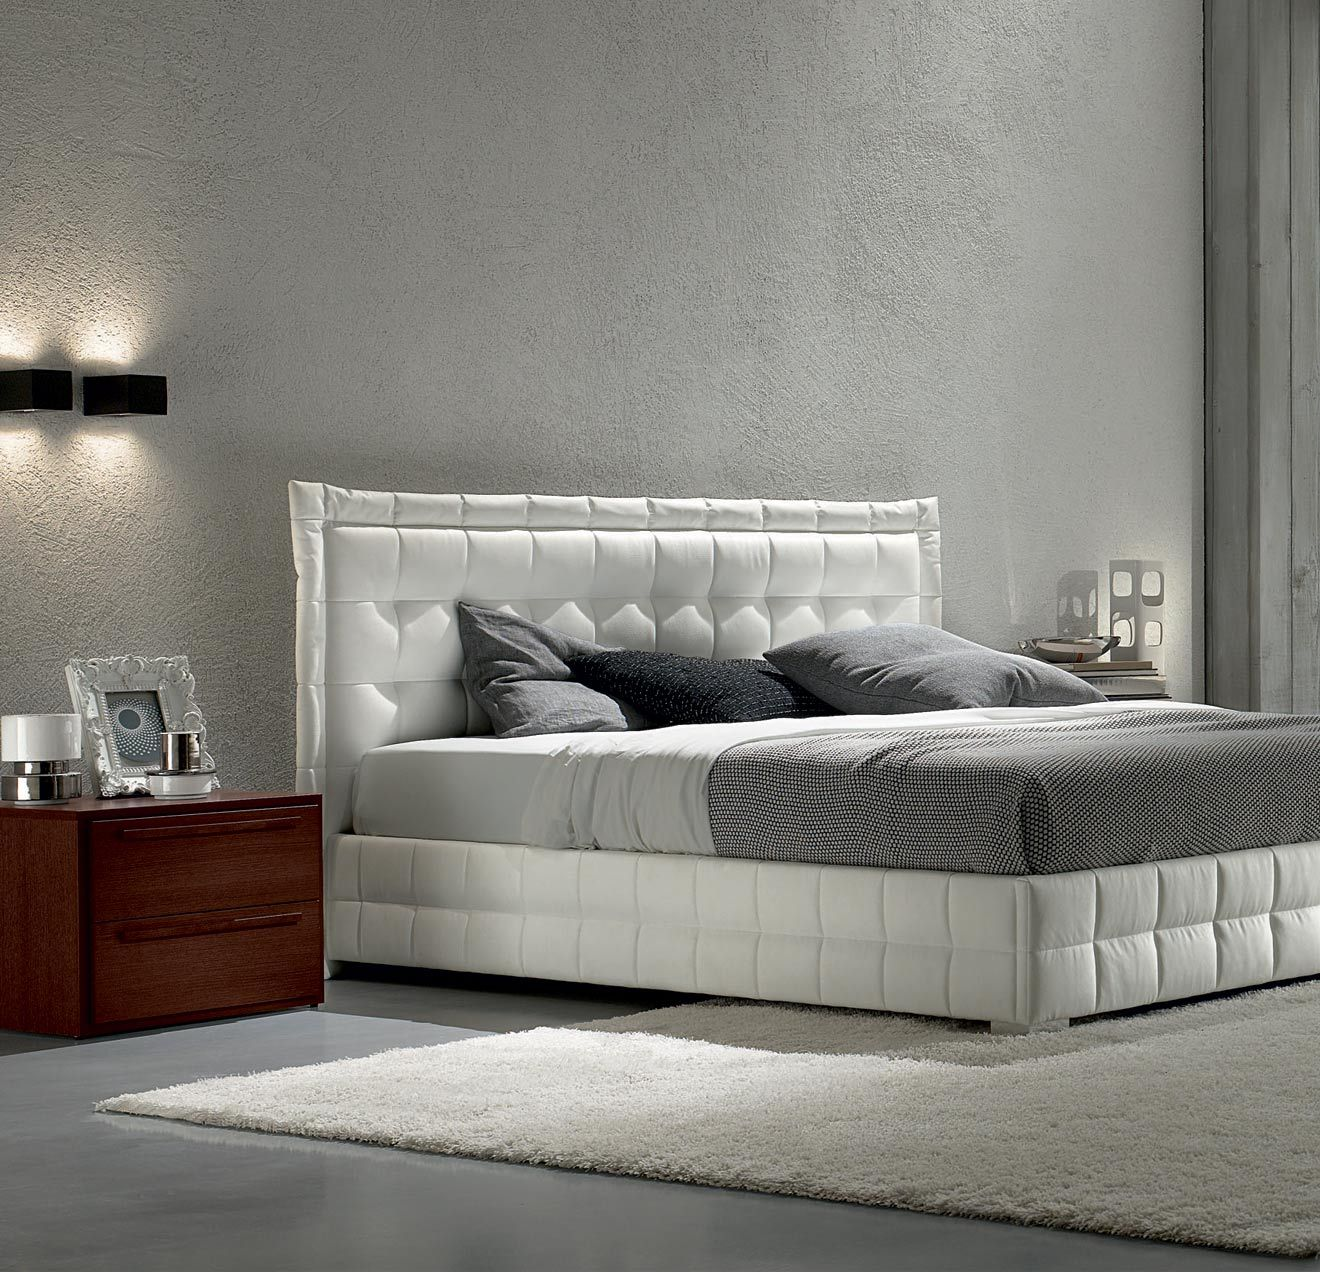 30 Awesome Bedroom Furniture Design Ideas | Bedroom furniture ...